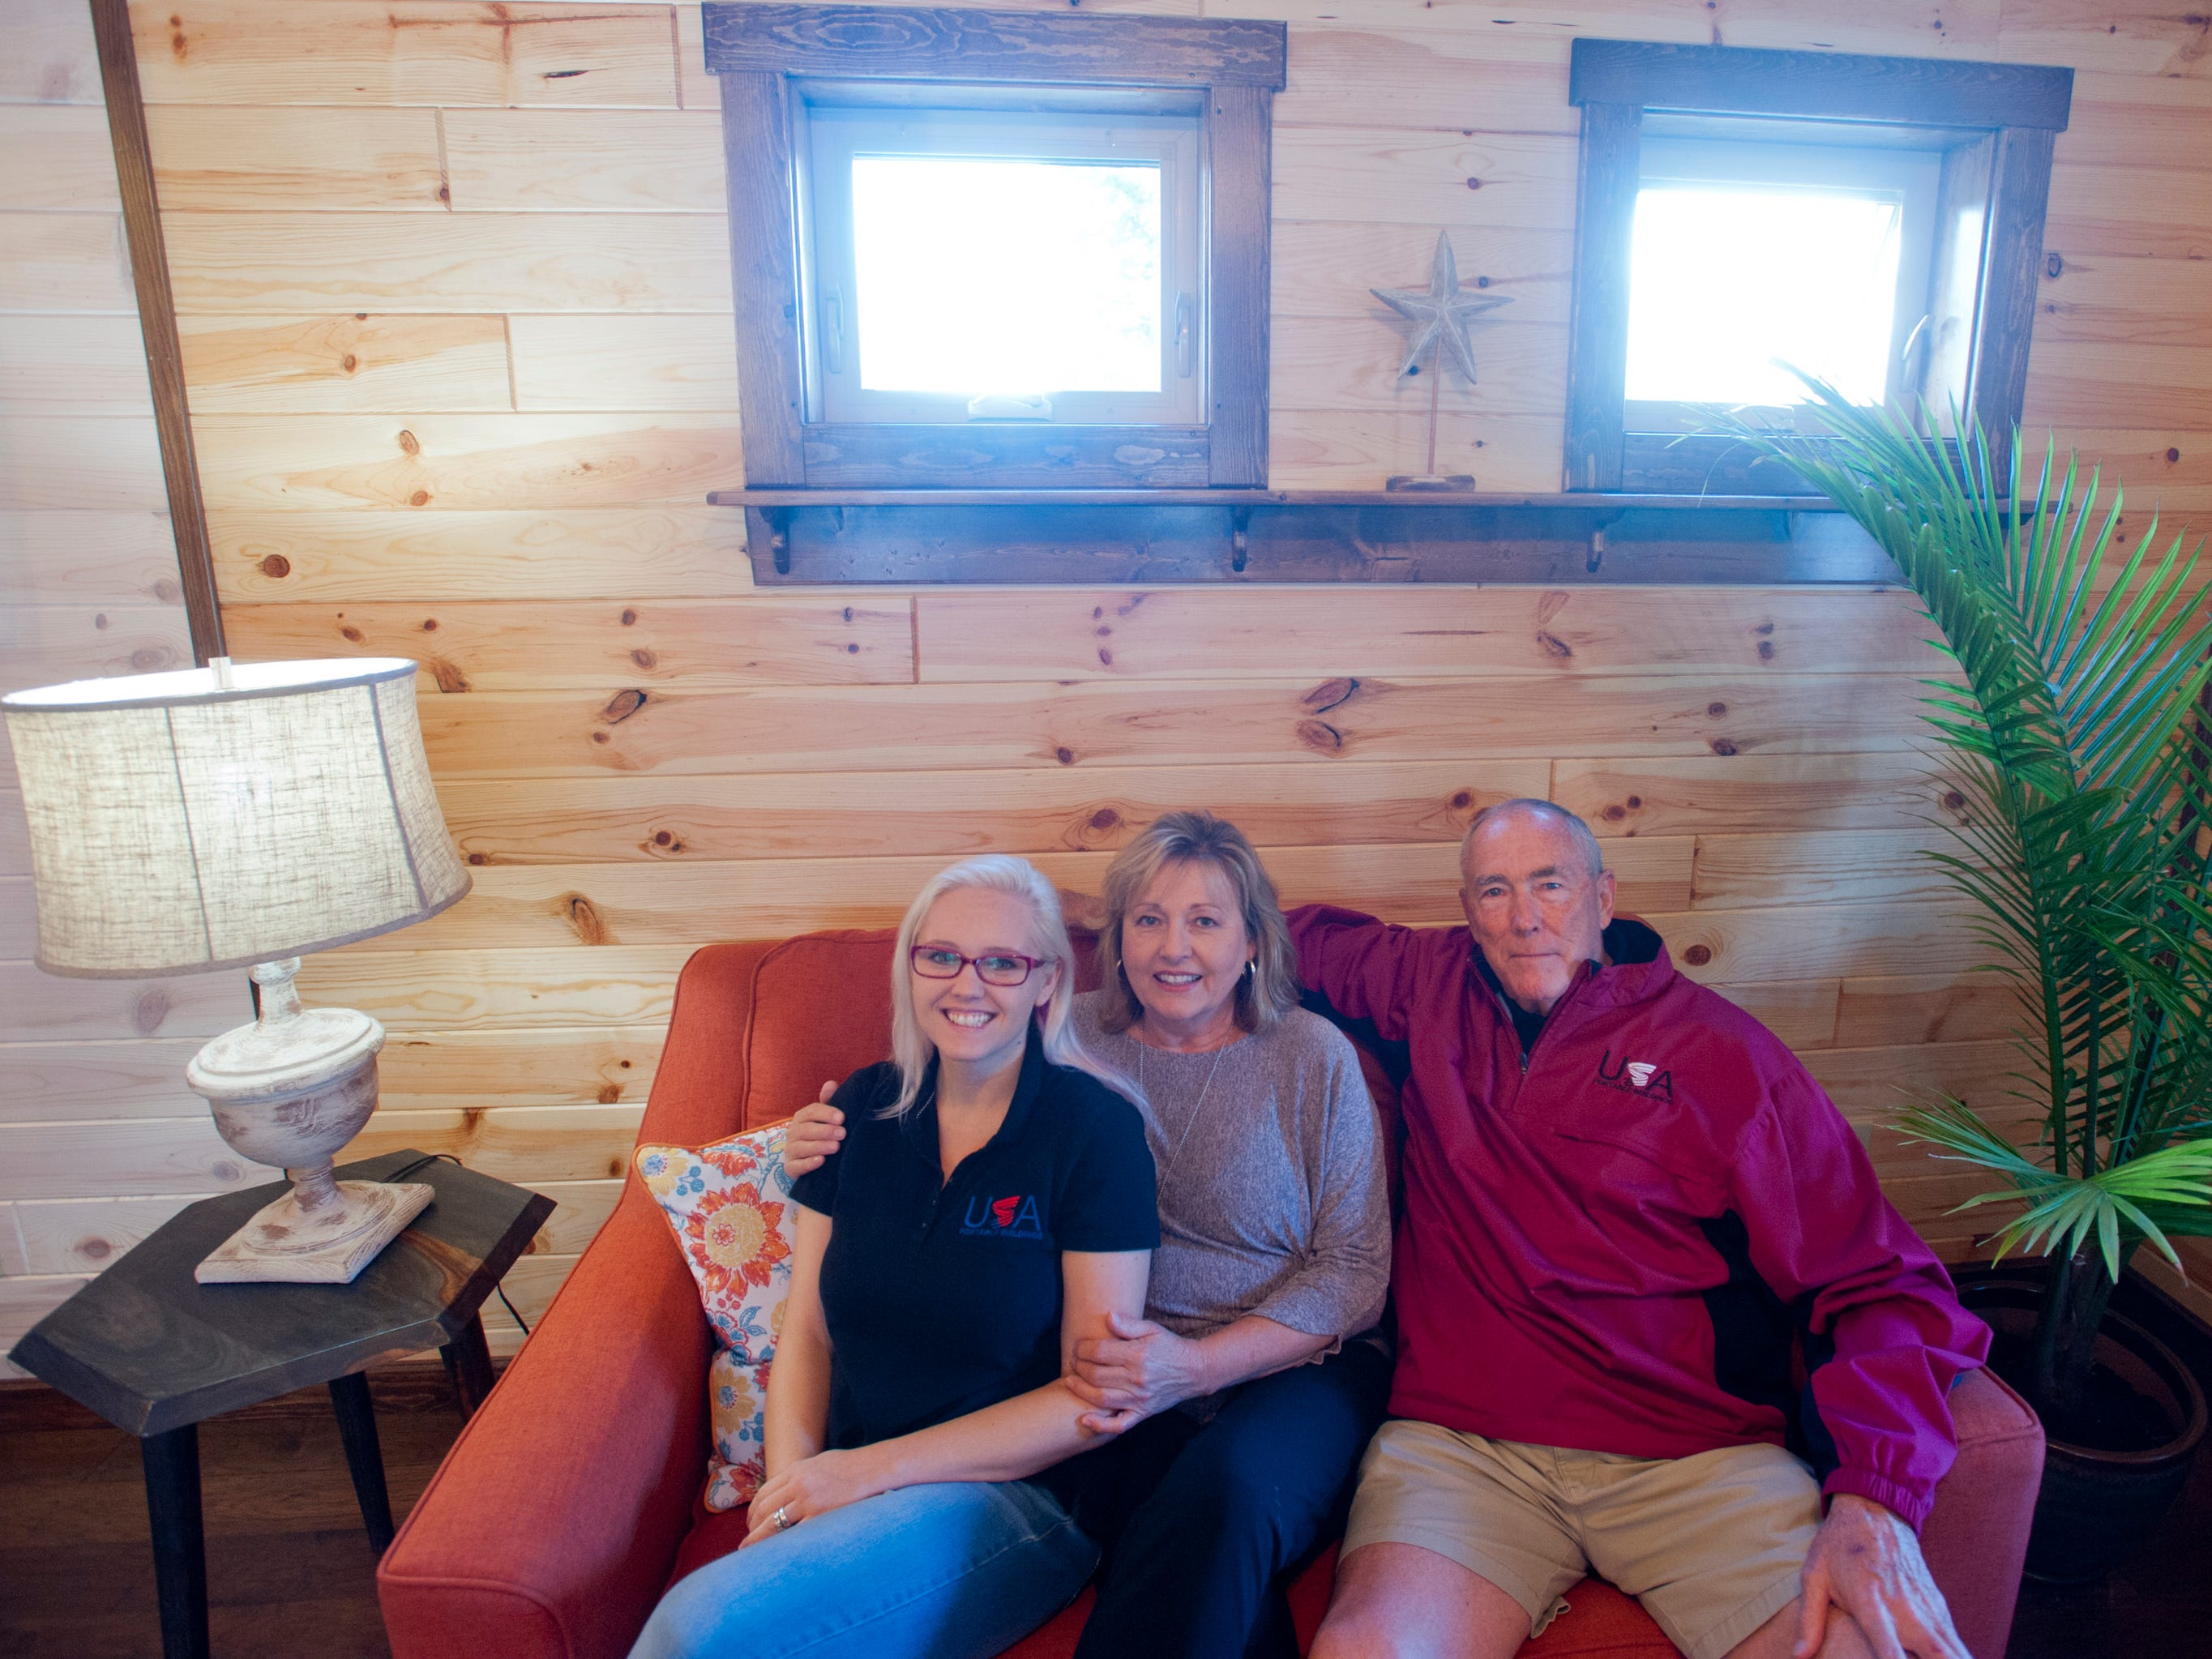 """Amish Made Cabins of Shepherdsville is making this """"White River"""" cottage, geared toward its elderly and disabled customers. Here, owners Pamela and Jim White relax in the home's front living room with their daughter-in-law, Jennifer, left.September 10, 2018"""